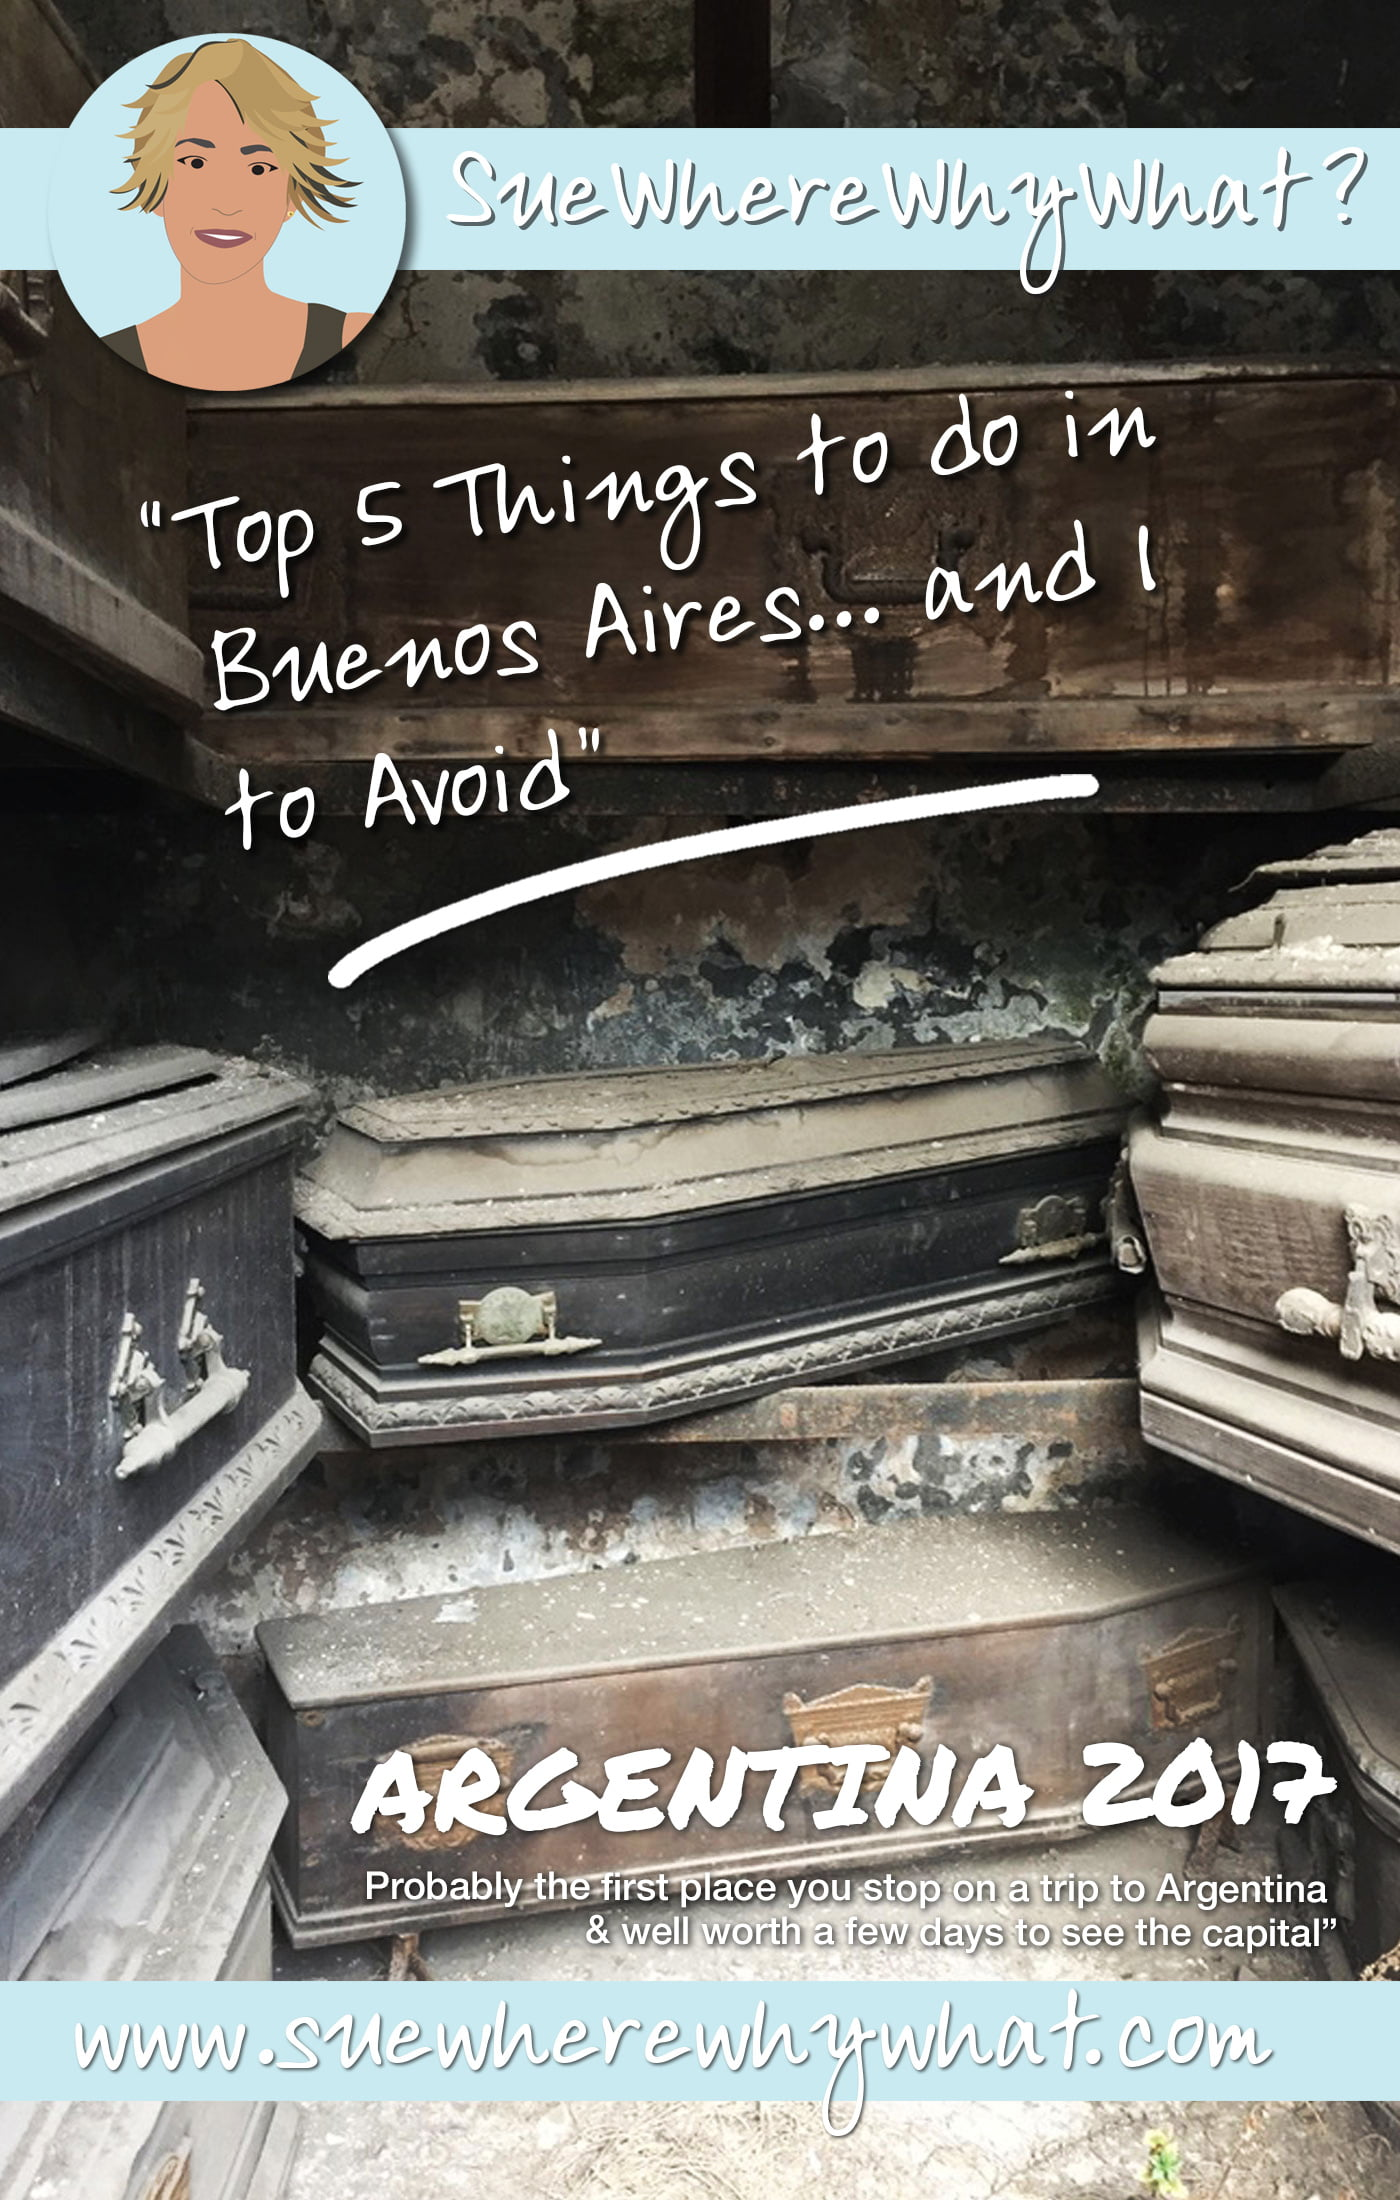 Top 5 Things to Do in Buenos Aires, Argentina (& 1 to avoid). Includes Walking Tours, Recoleta Cemetary, Eating in a Parilla, a Closed-Door Restaurant & watching a Tango Show. And avoid the open bus tour!  